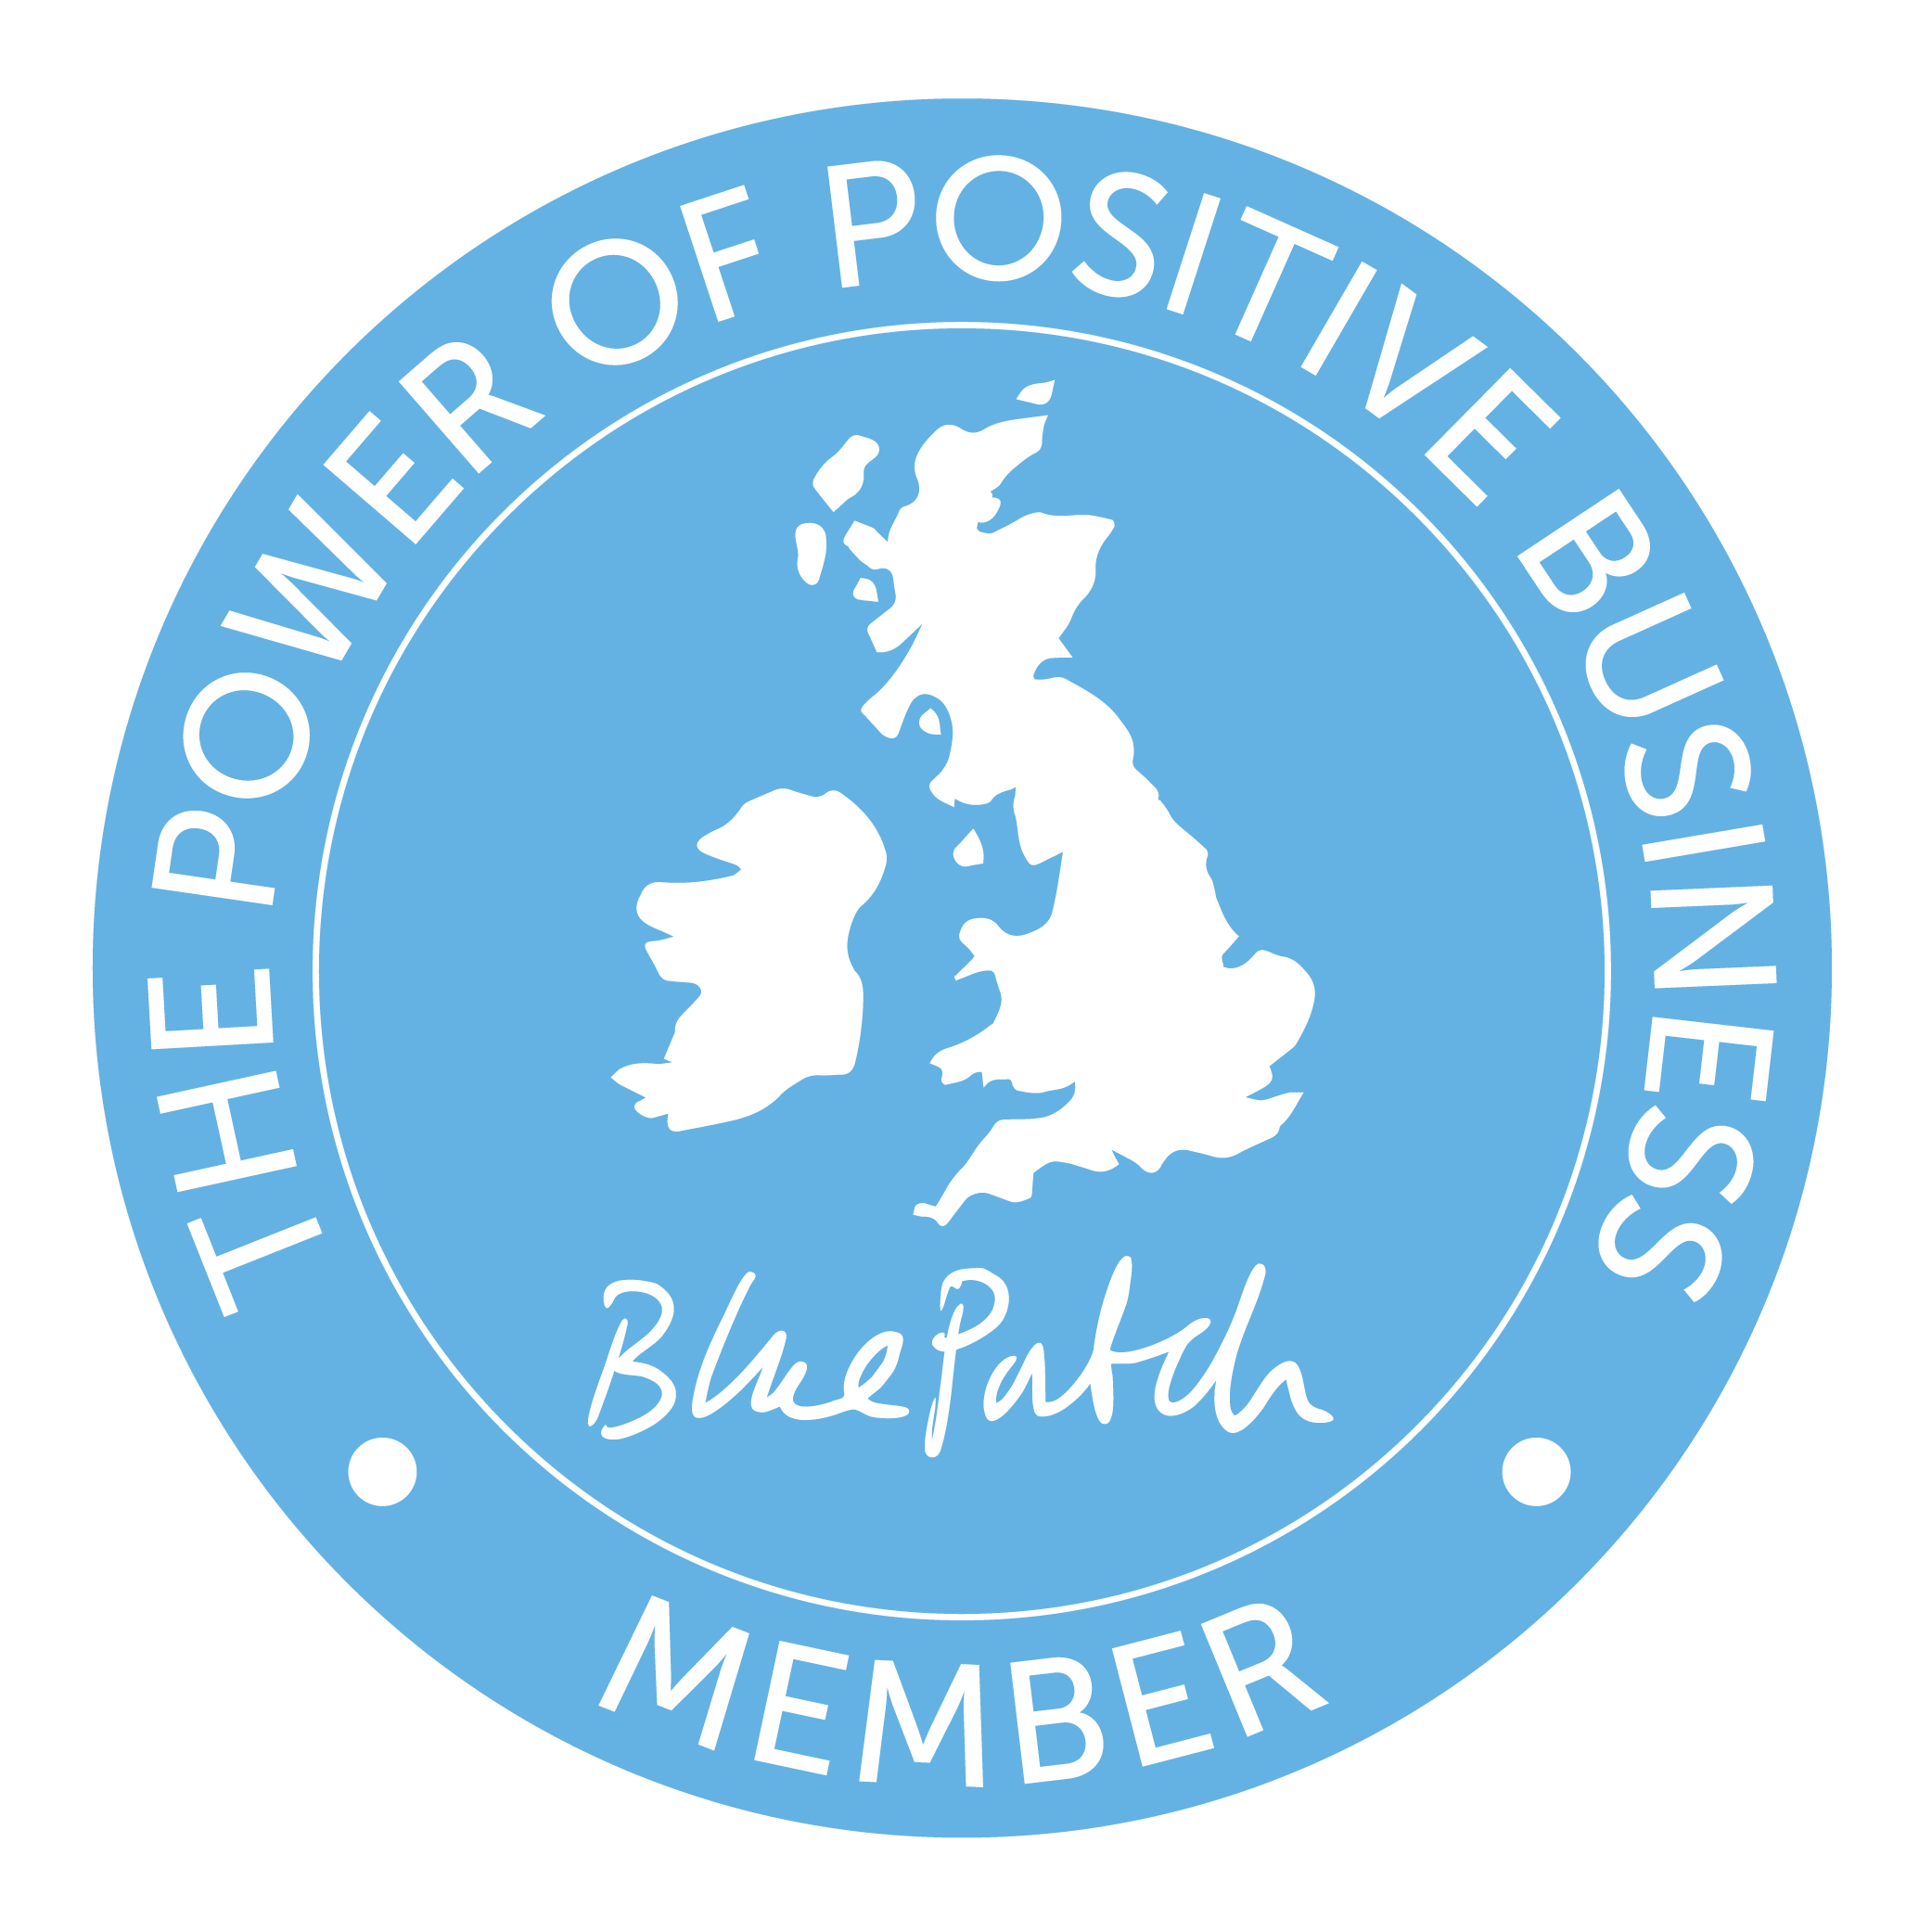 Blue Patch members logo